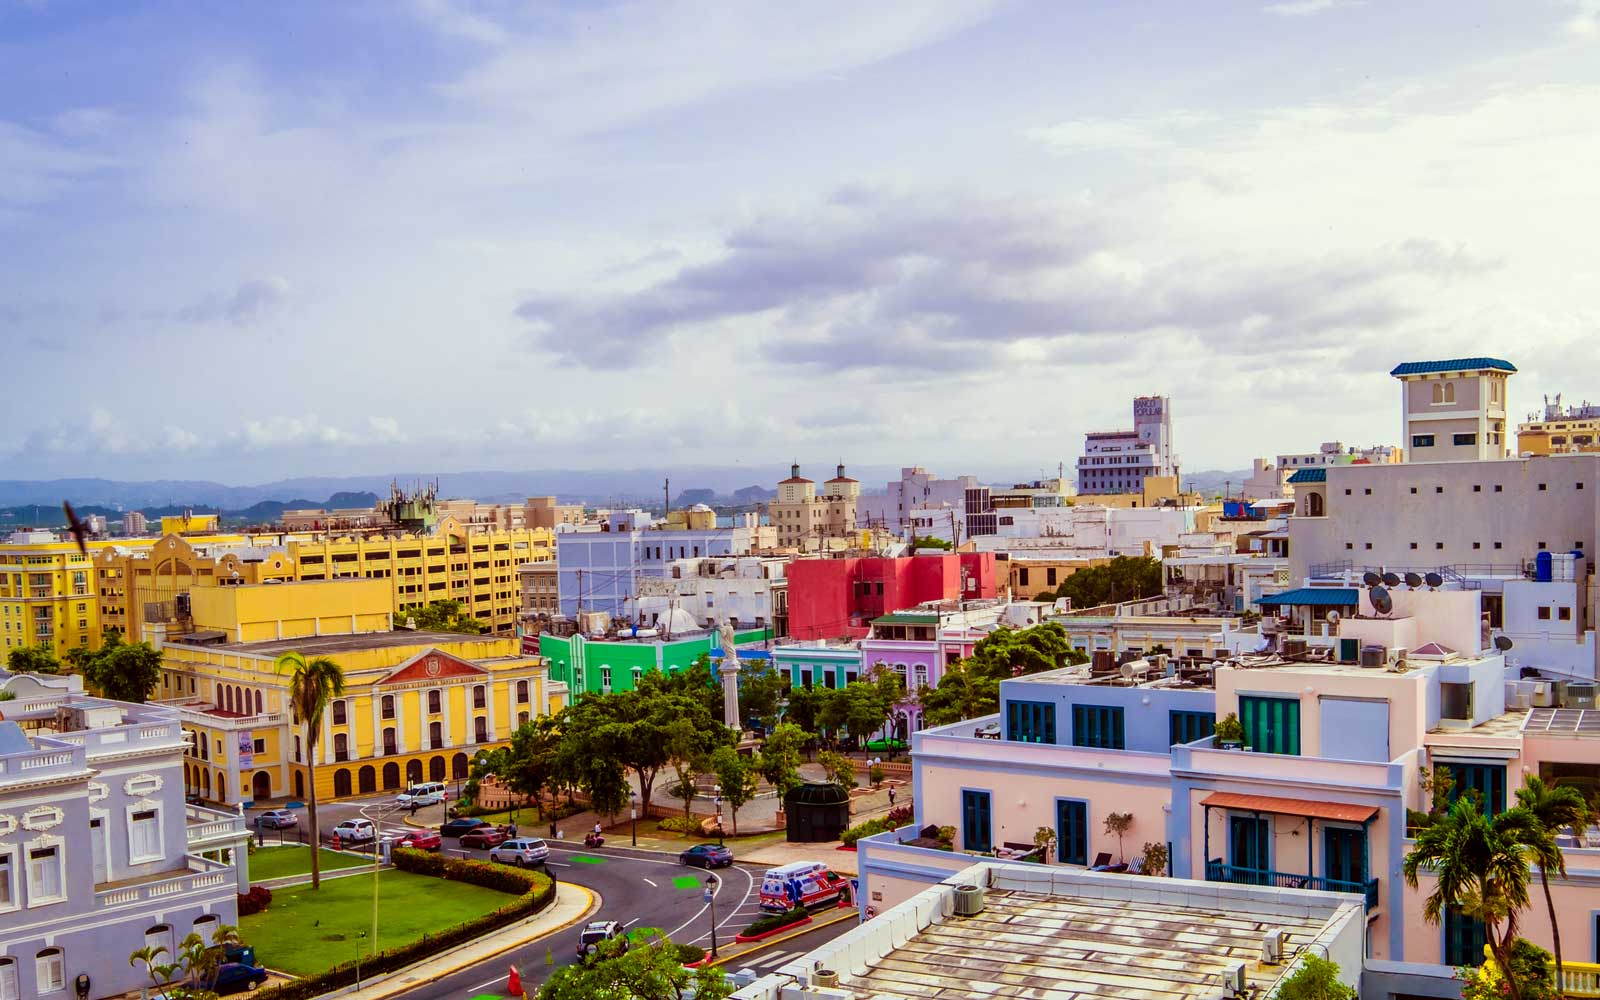 Book a Flight to Puerto Rico This Winter Starting at $177 Round-trip